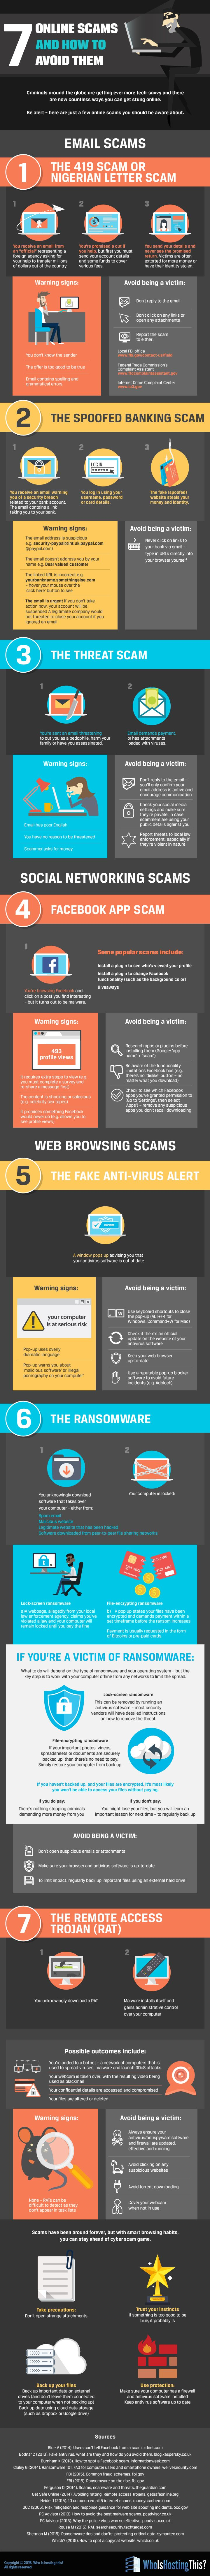 7 Online Scams and How to Avoid Them #infographic